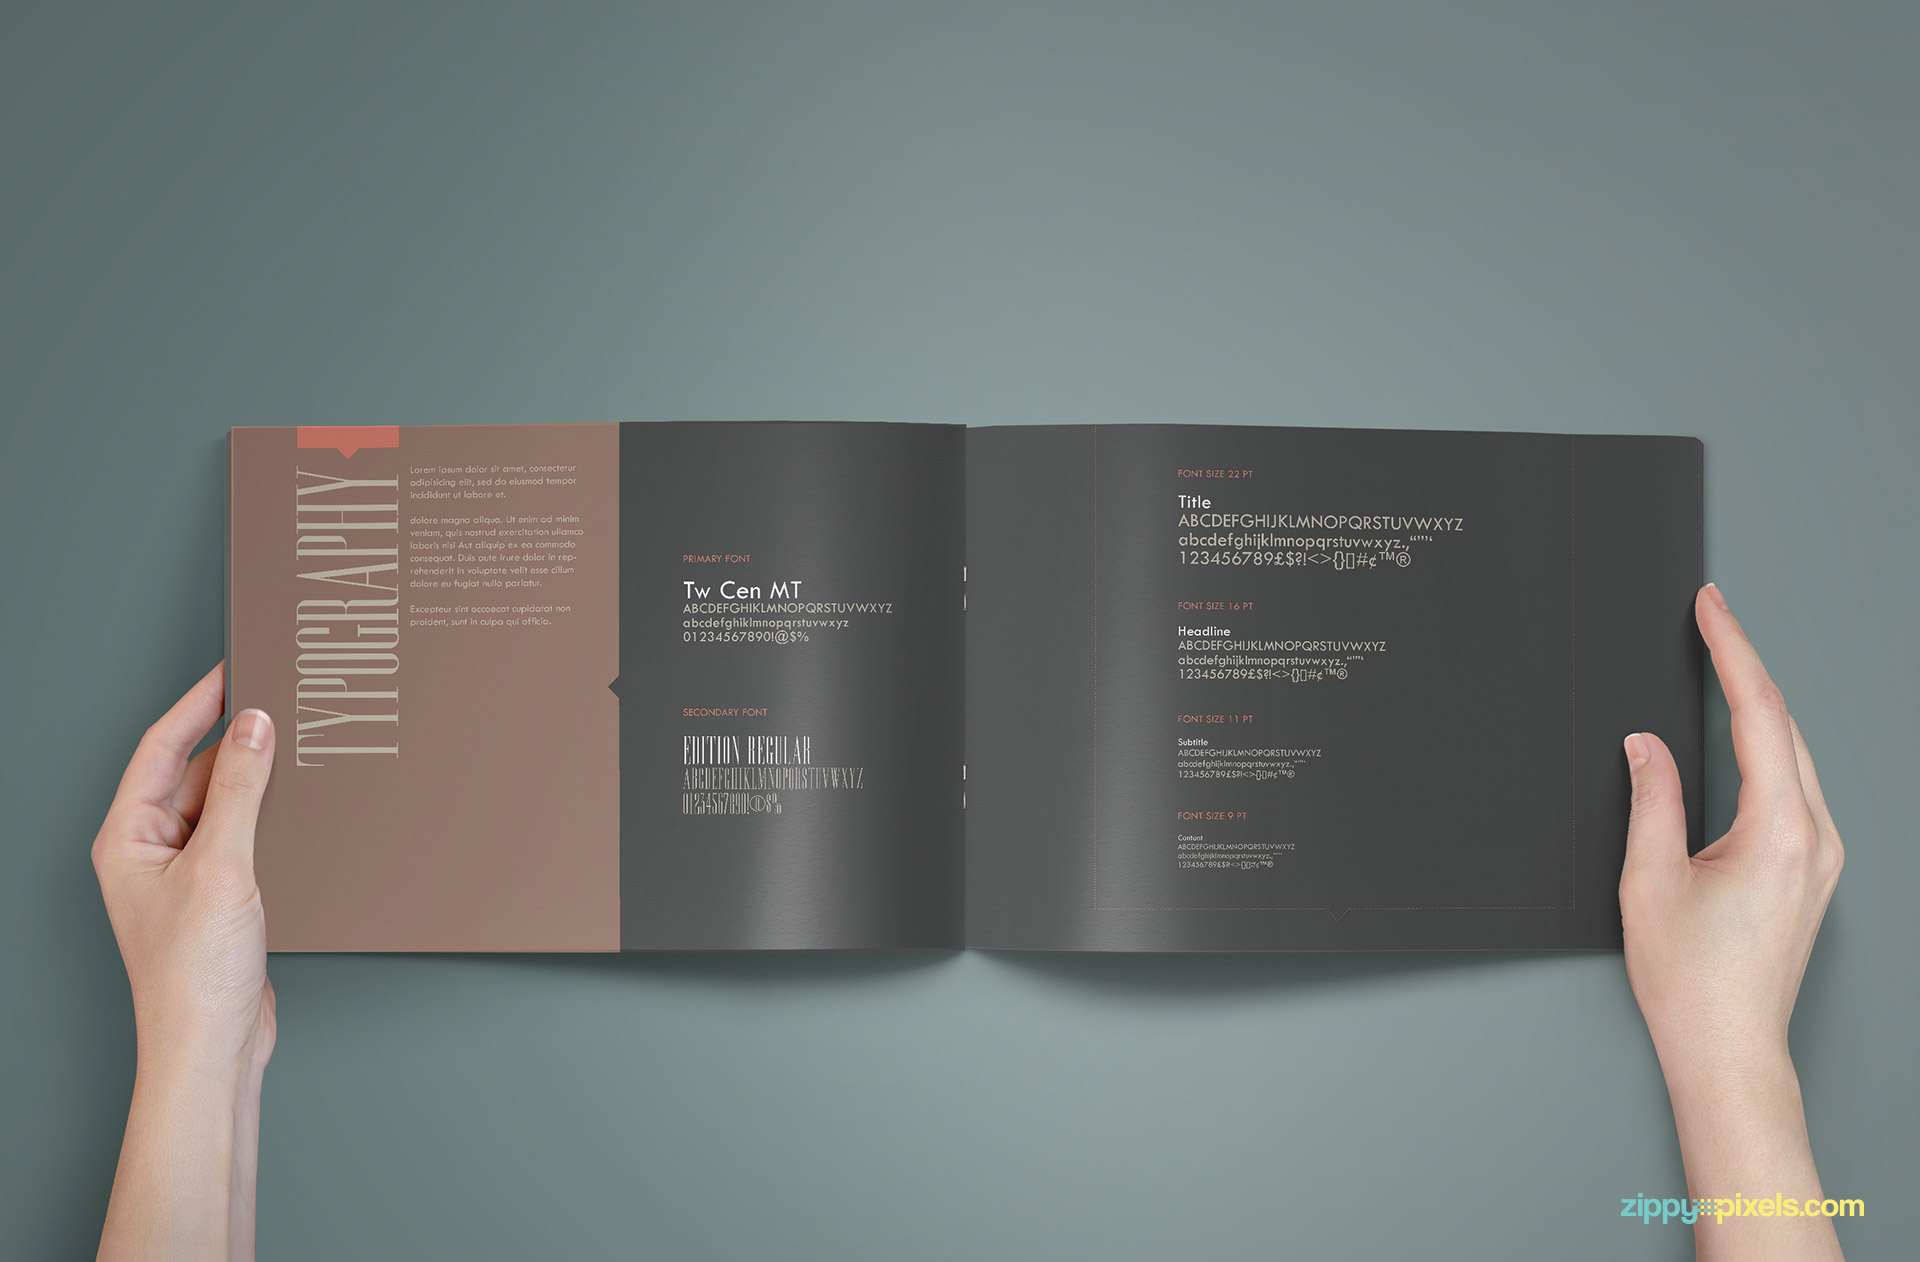 A Splendid Brand Book Template With Professional Design To Present Ideny Designs Your Clients In Its Grandeur